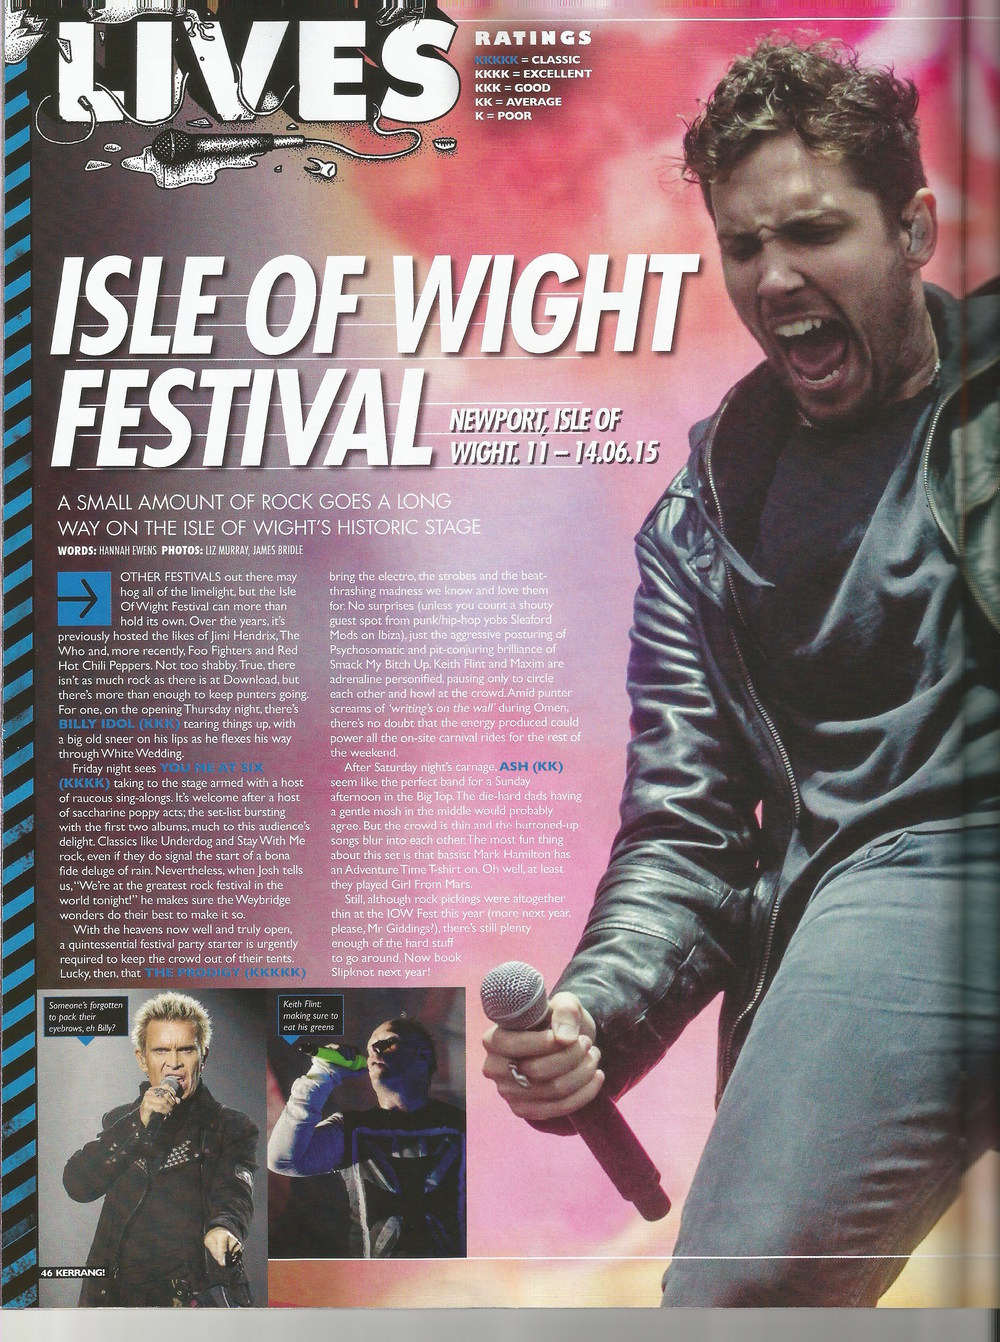 Isle of Wight Kerrang Magazine, Billy Idol